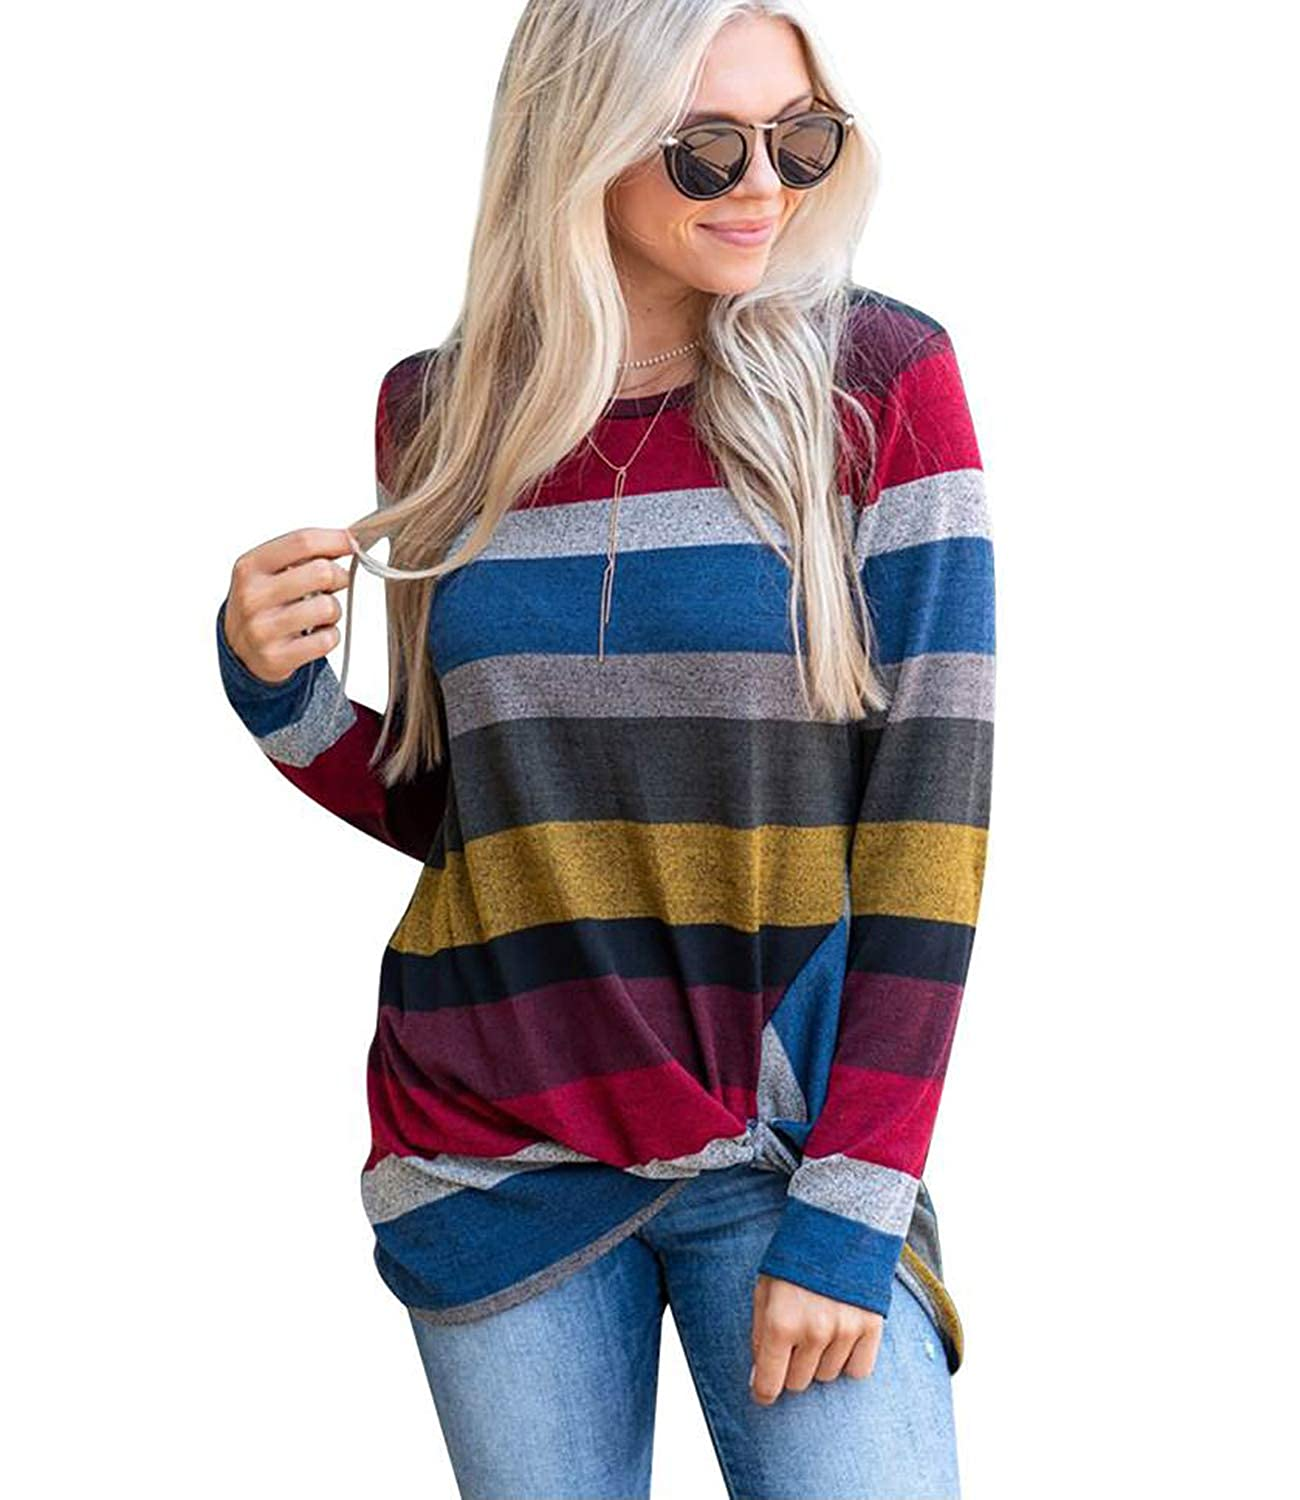 Red MYIFU Women's Casual Long Sleeves Knot Side Twist Knit Striped Blouse Top